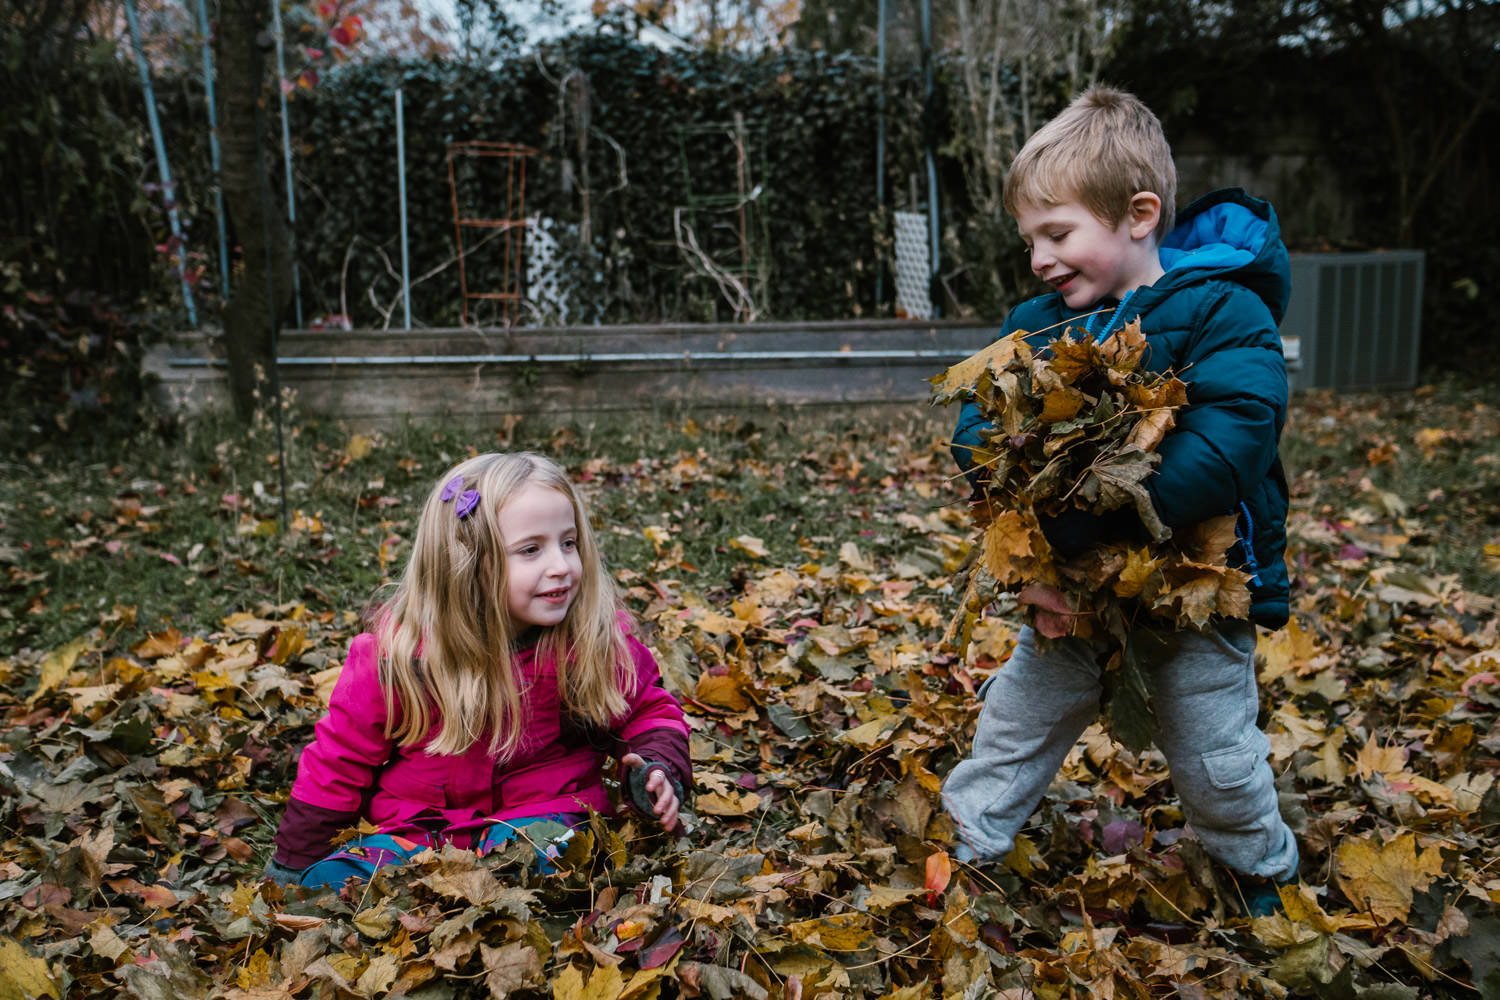 Two children play with leaves in their backyard.